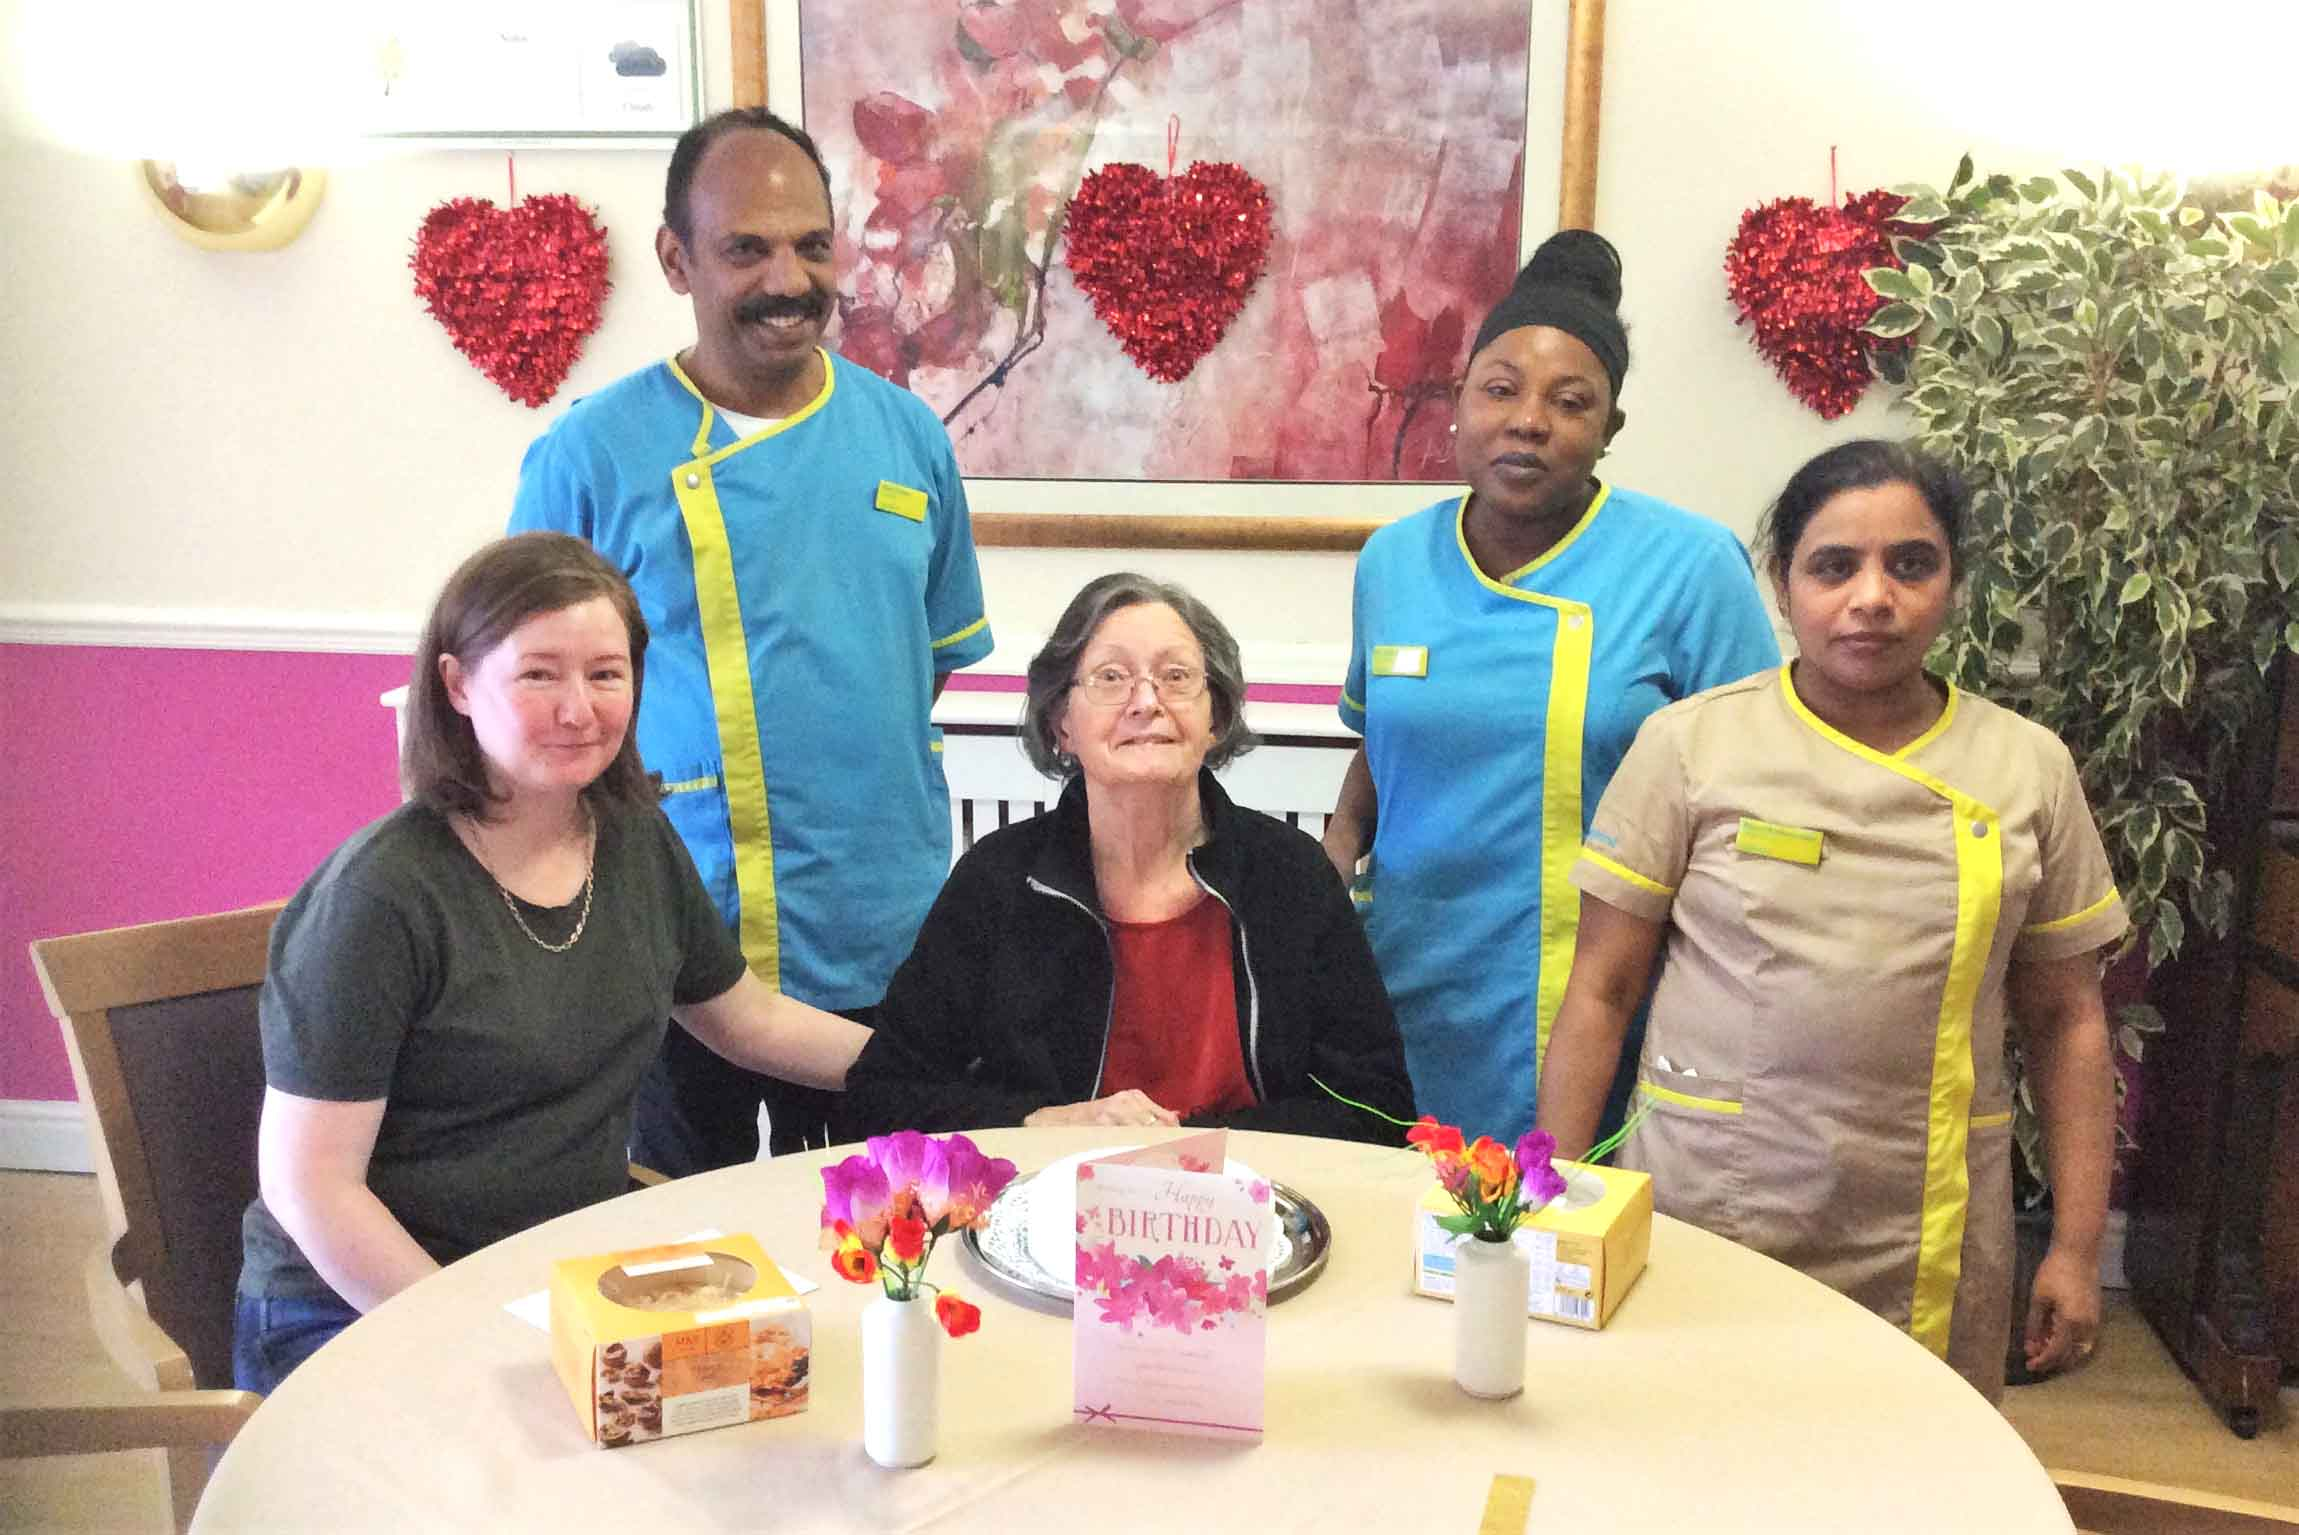 resident at Uplands Care Home in Streatham